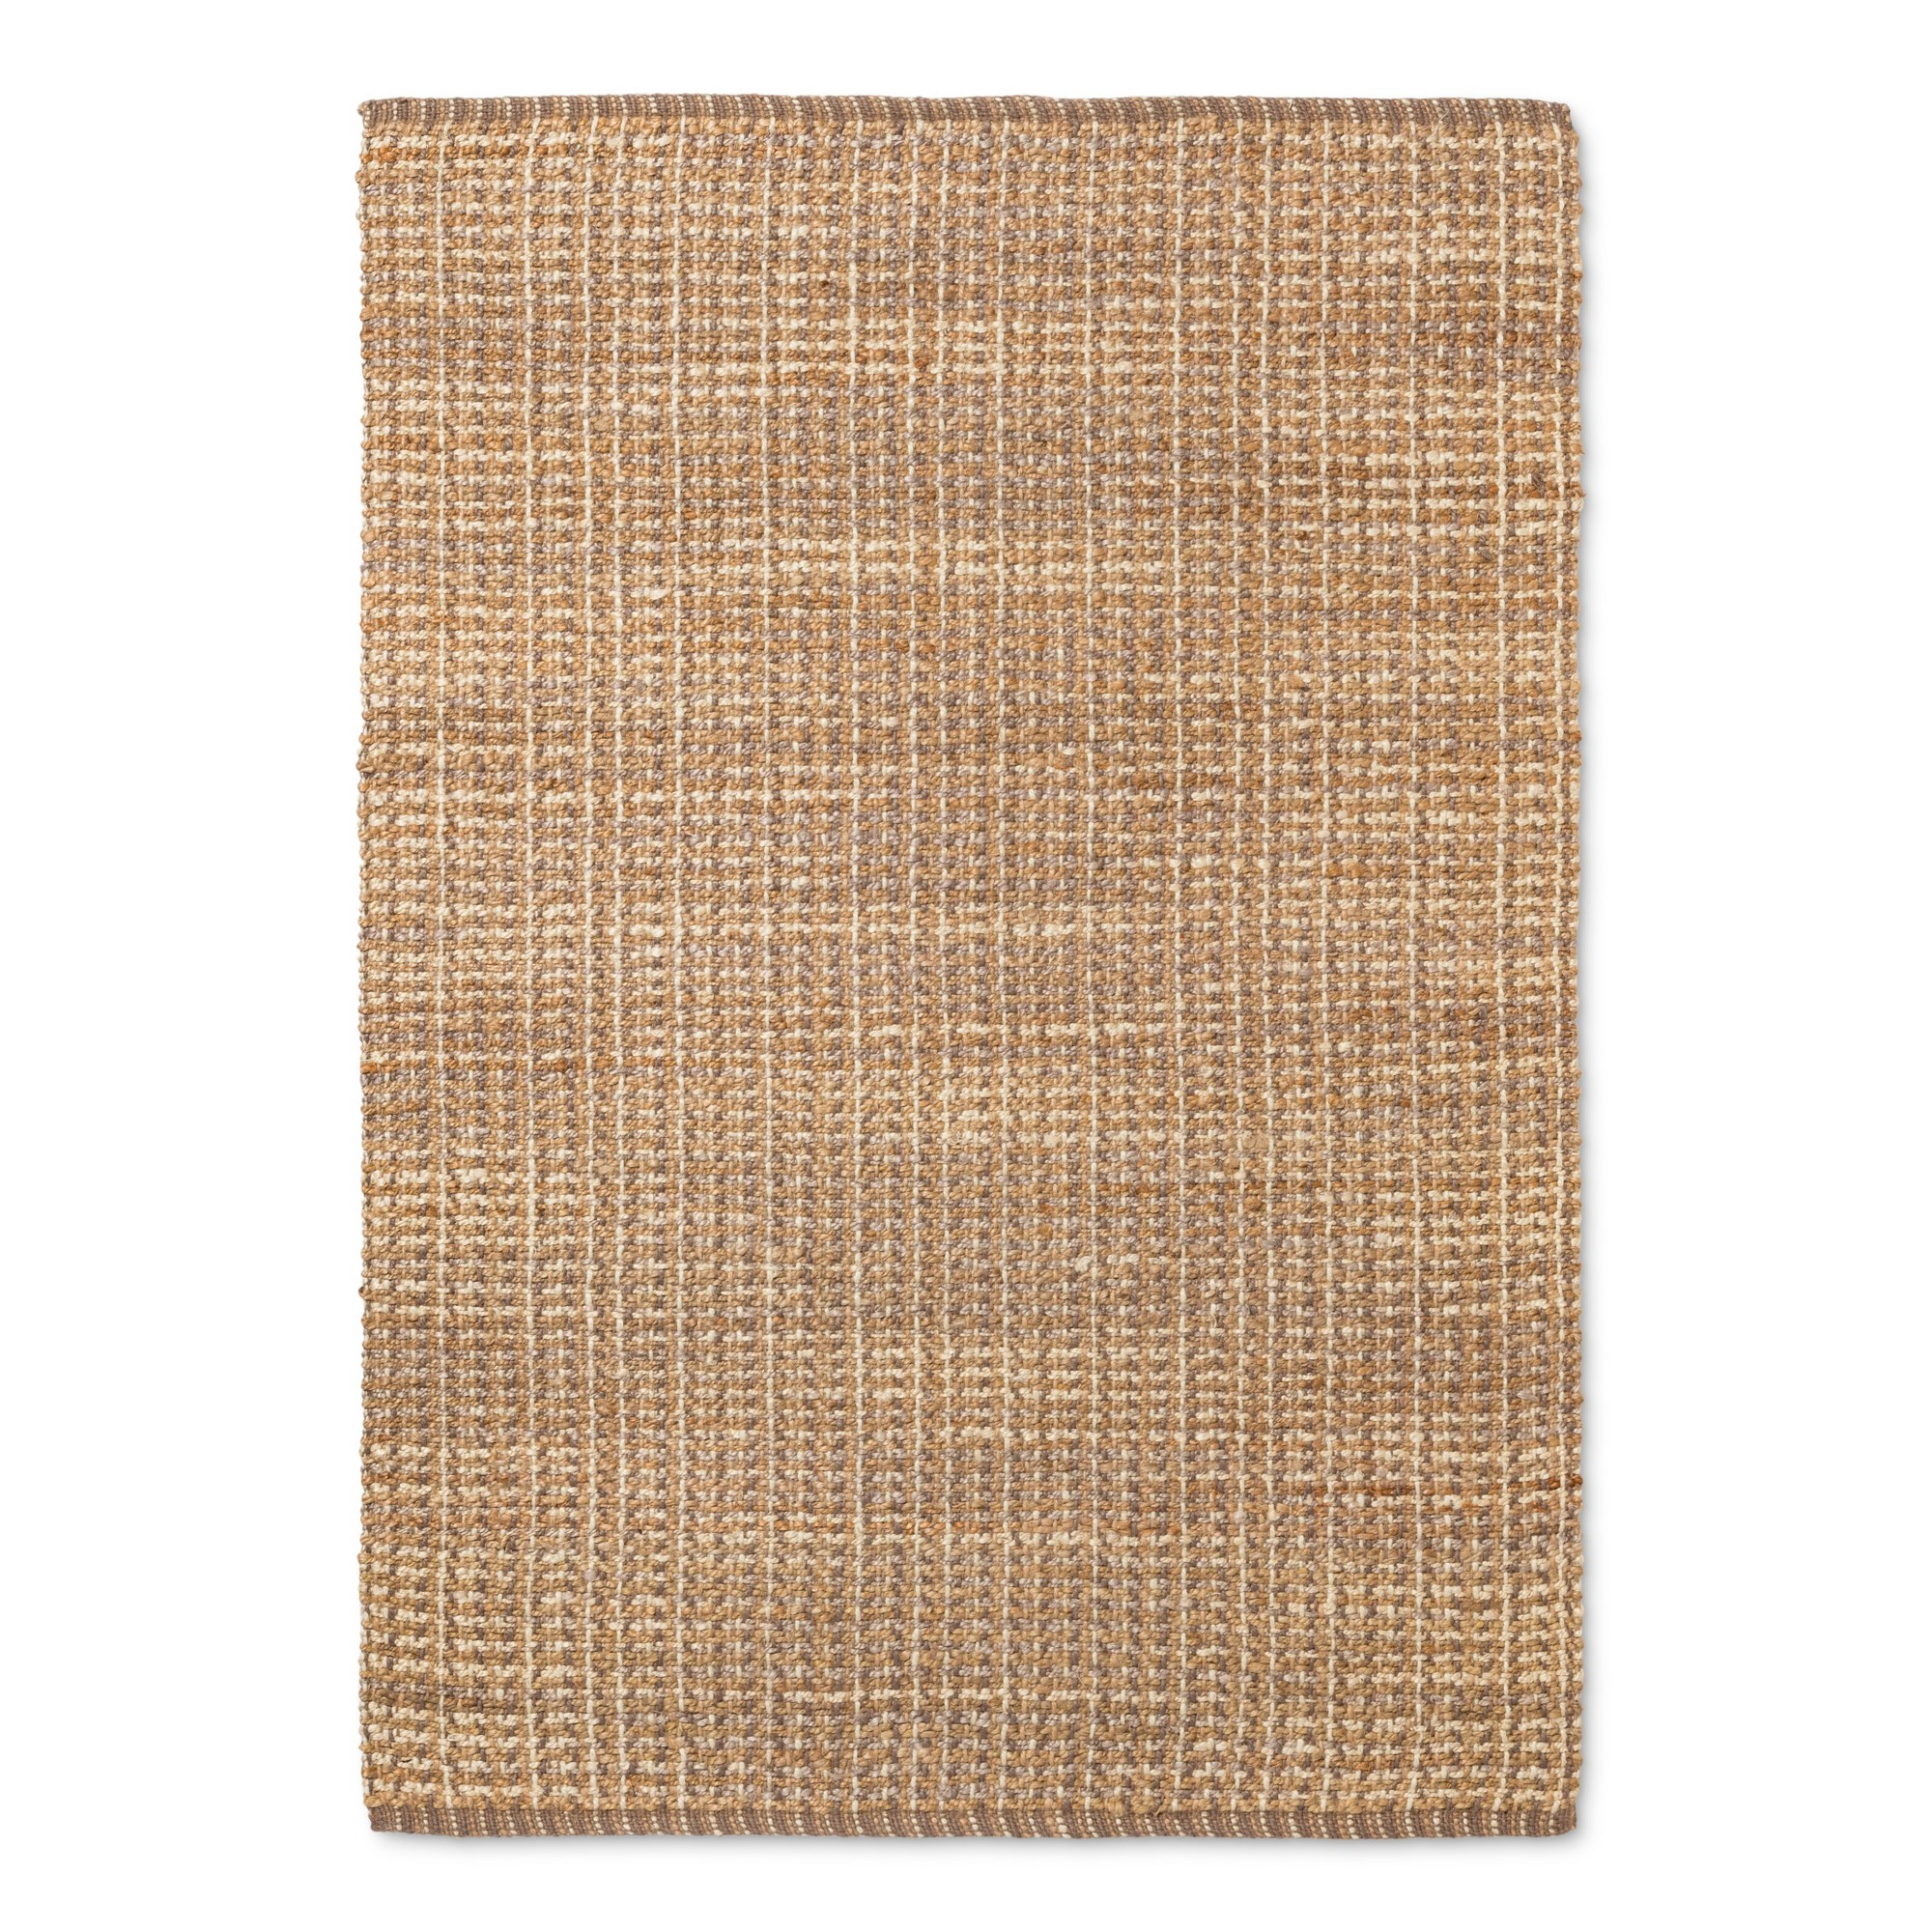 Basket Weave Woven Area Rug 5 X7 60 X84 Threshold Natural